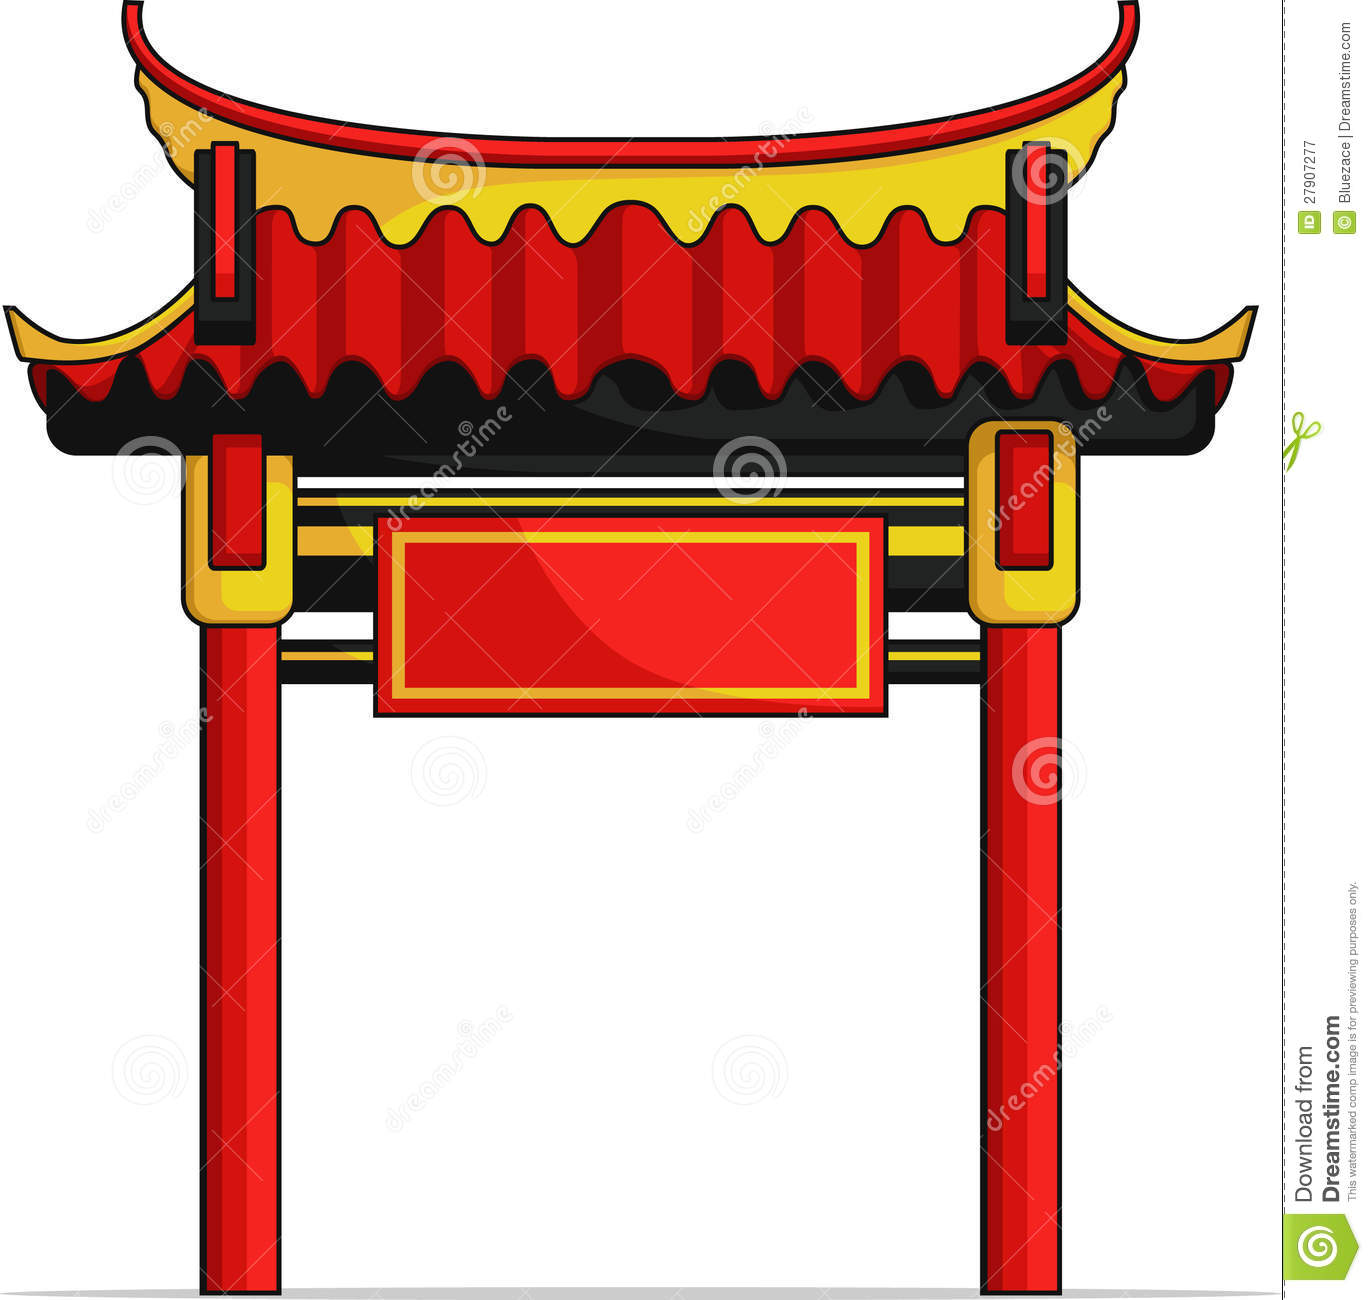 China Town clipart chinese architecture Clipart Stock Gate gate Chinese